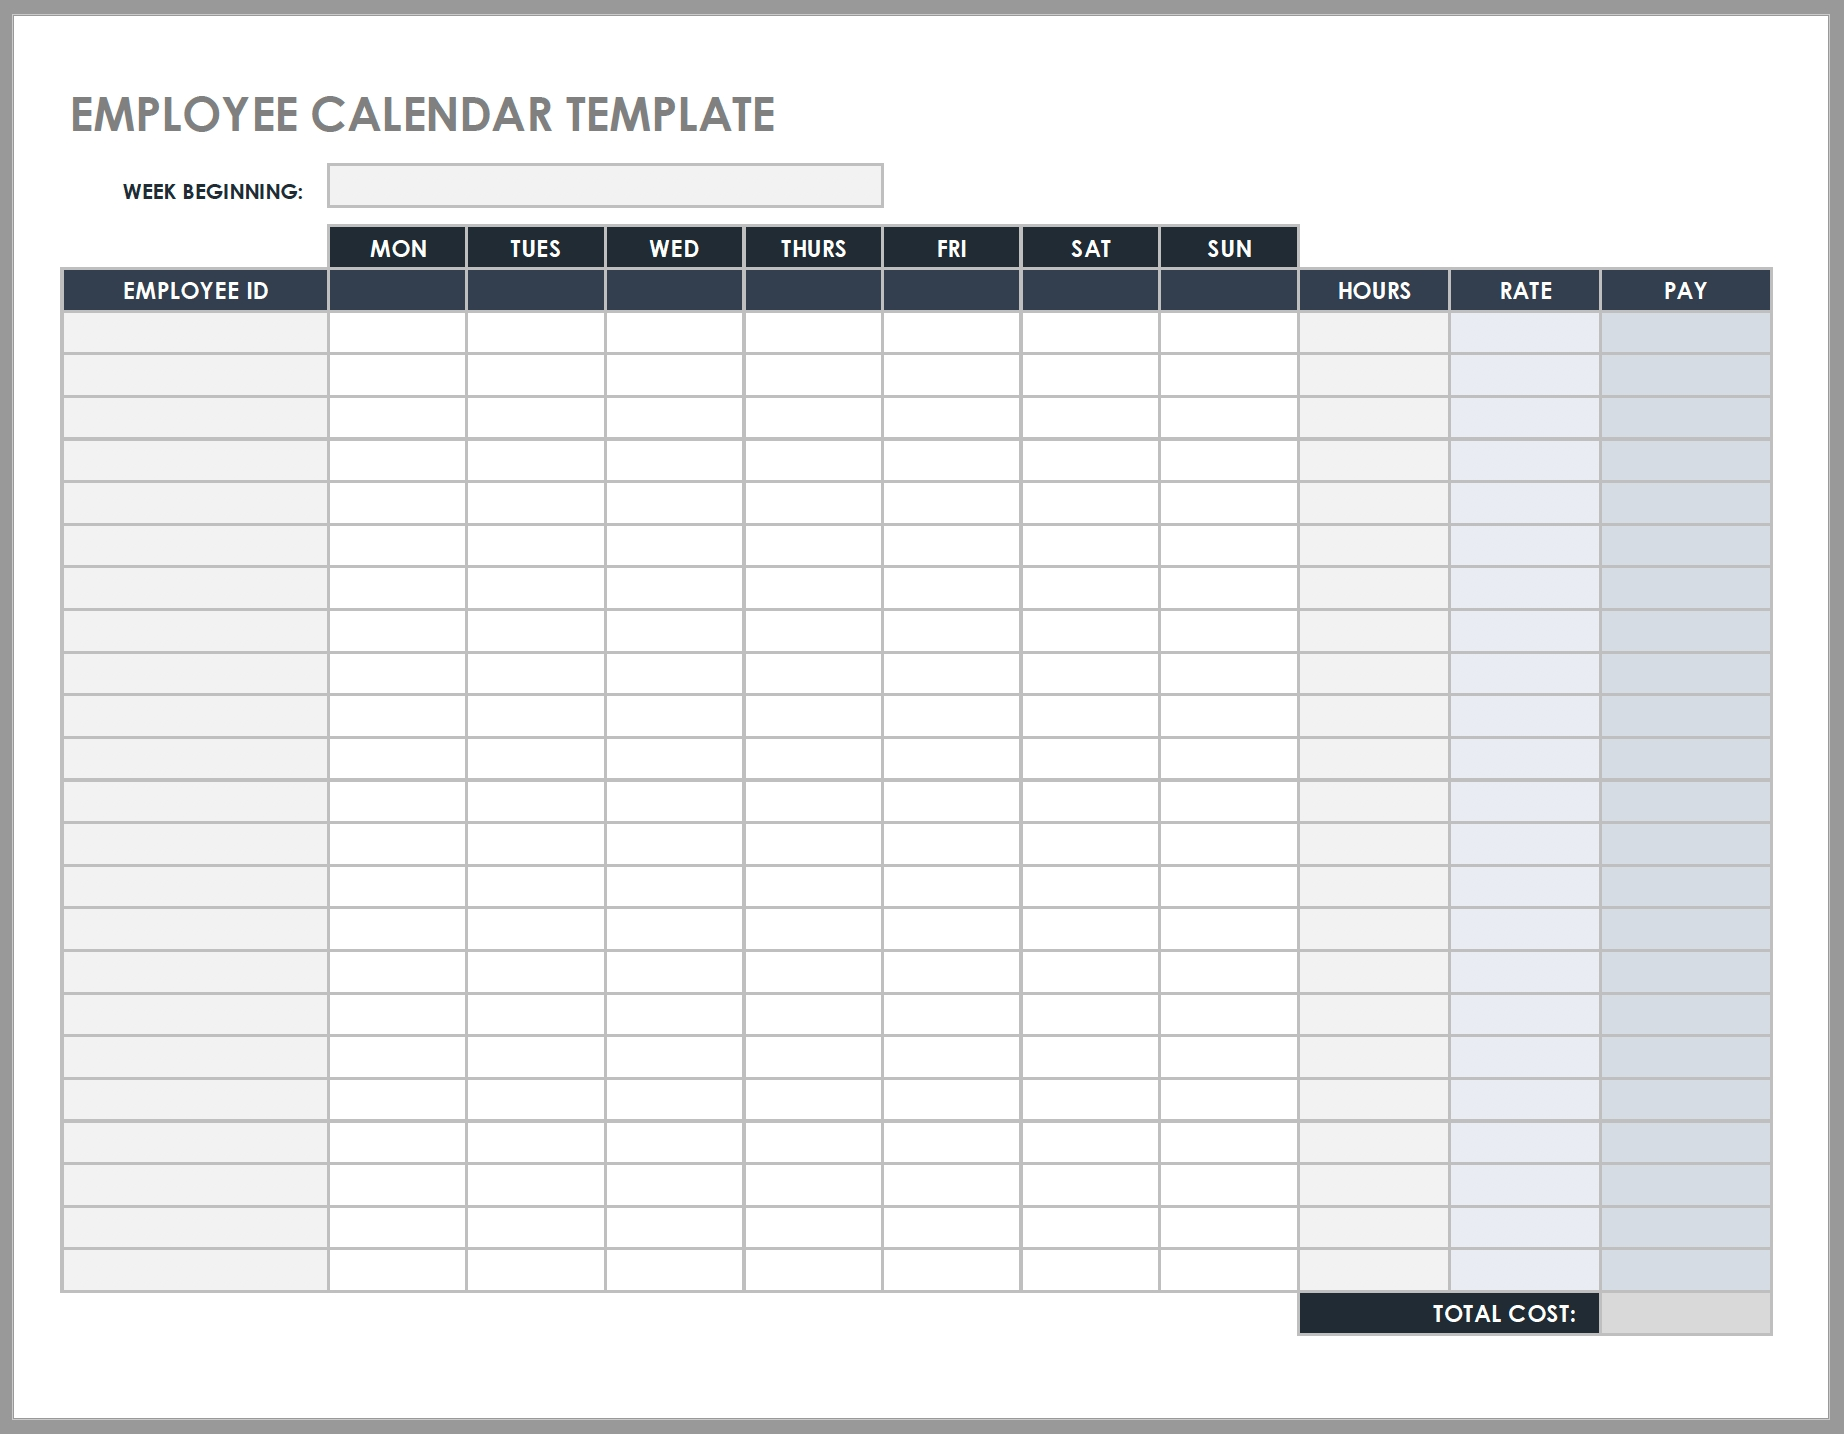 Free Daily Work Schedule Templates | Smartsheet